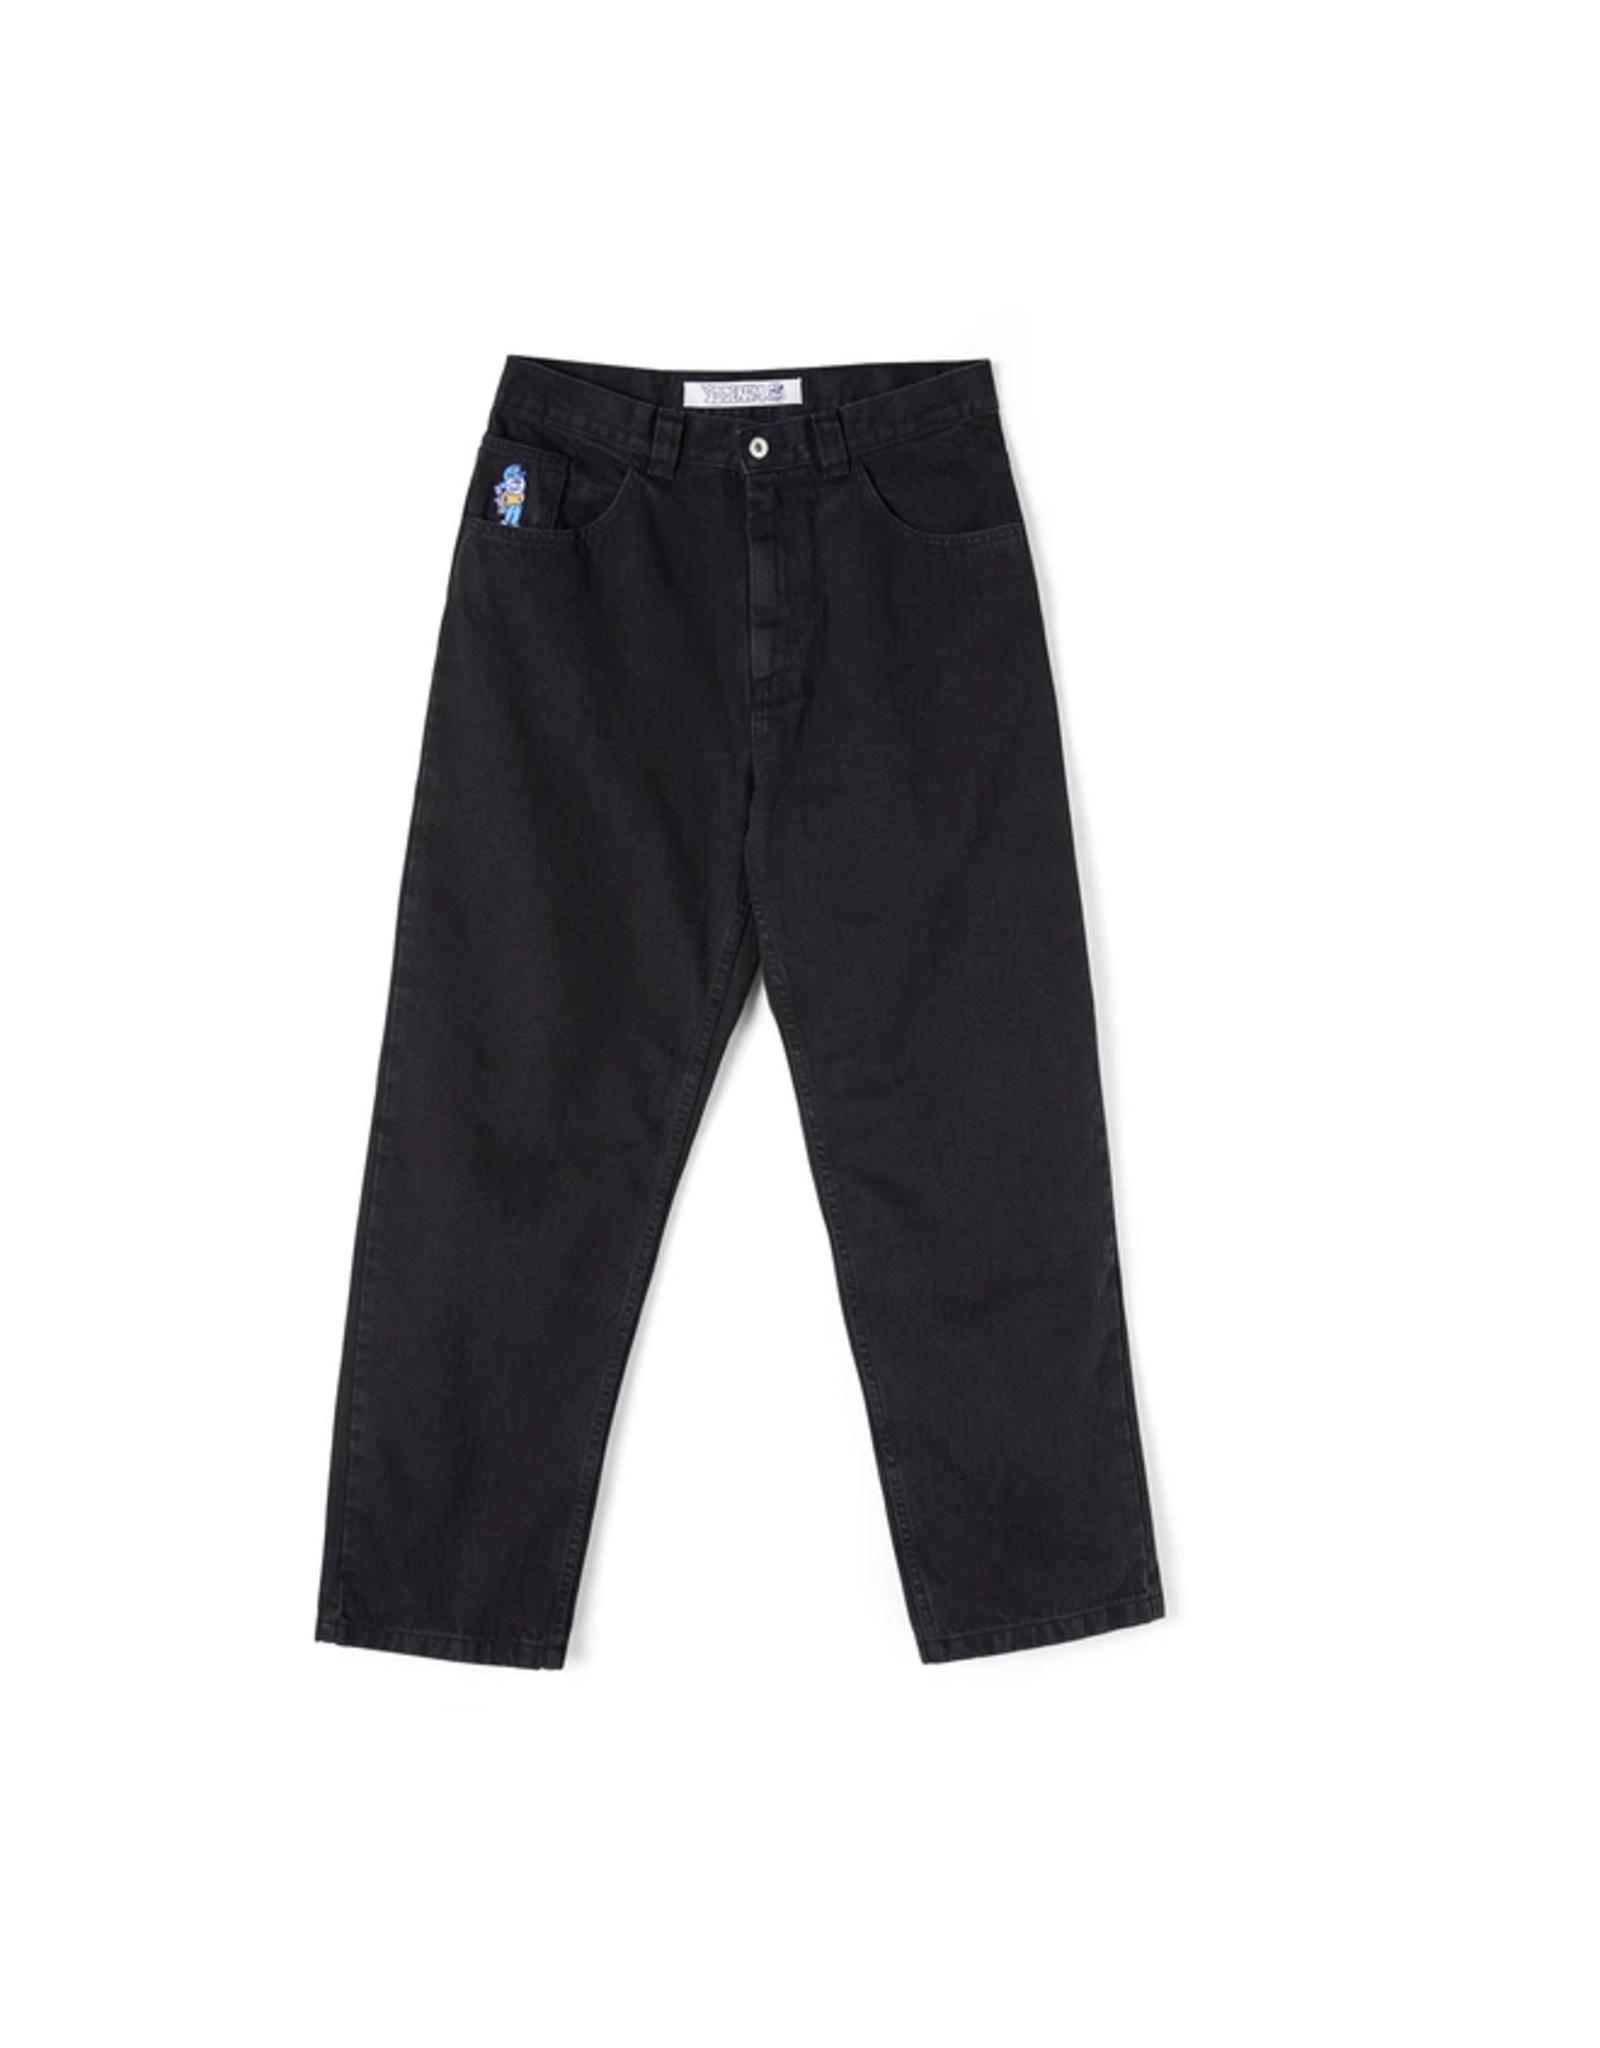 Polar 93' Denim - Pitch Black